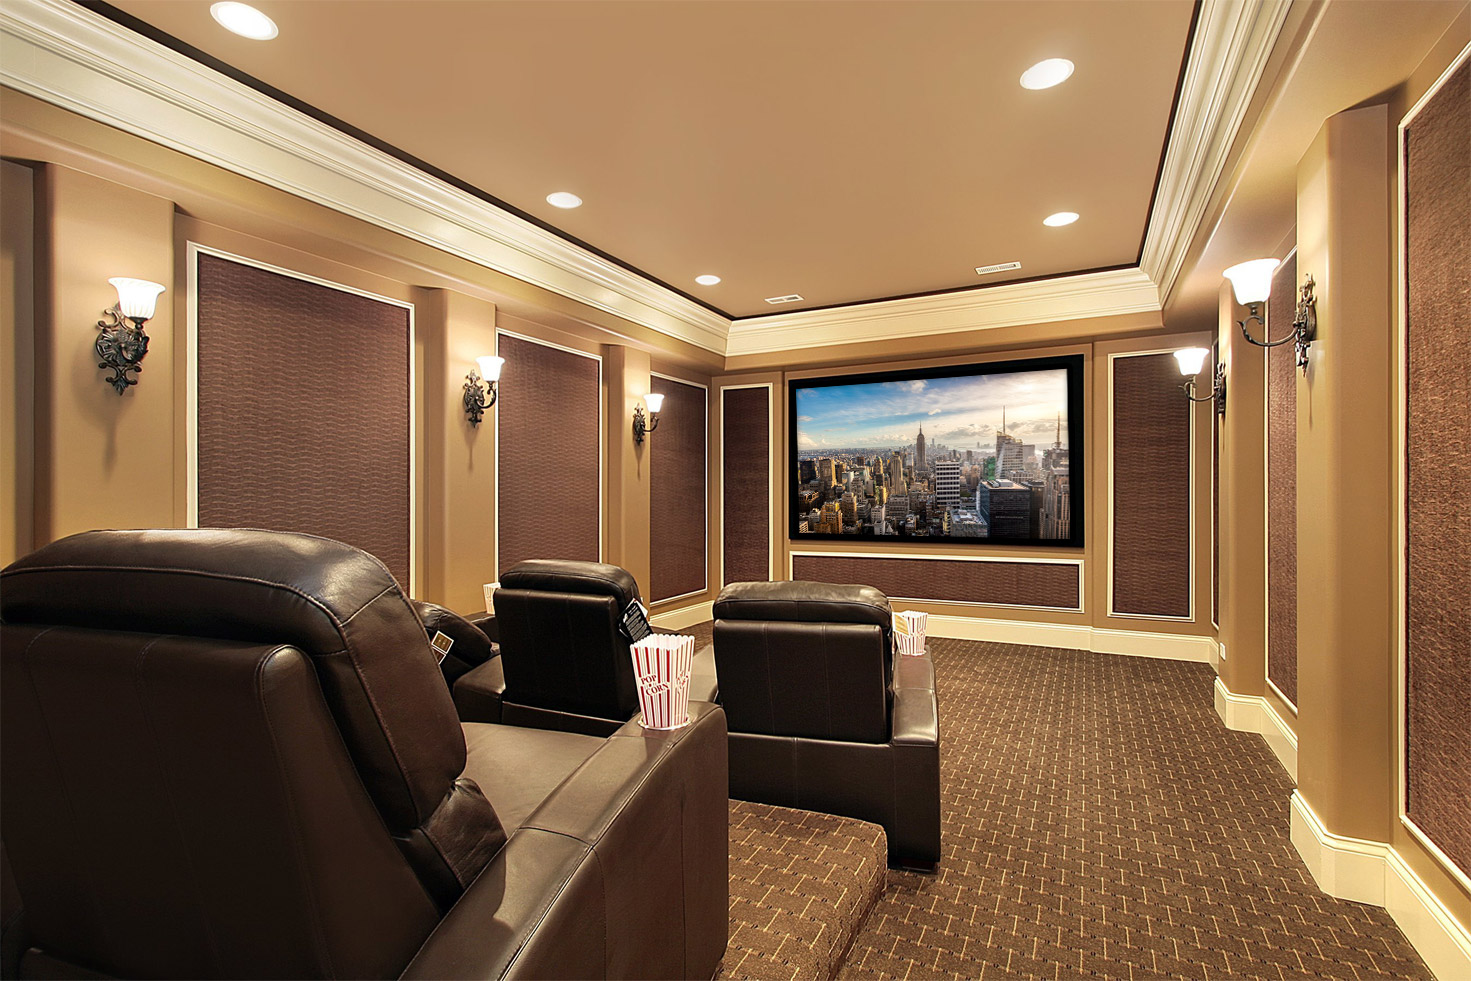 Theatre Room Design home theater installation houston | home cinema installers